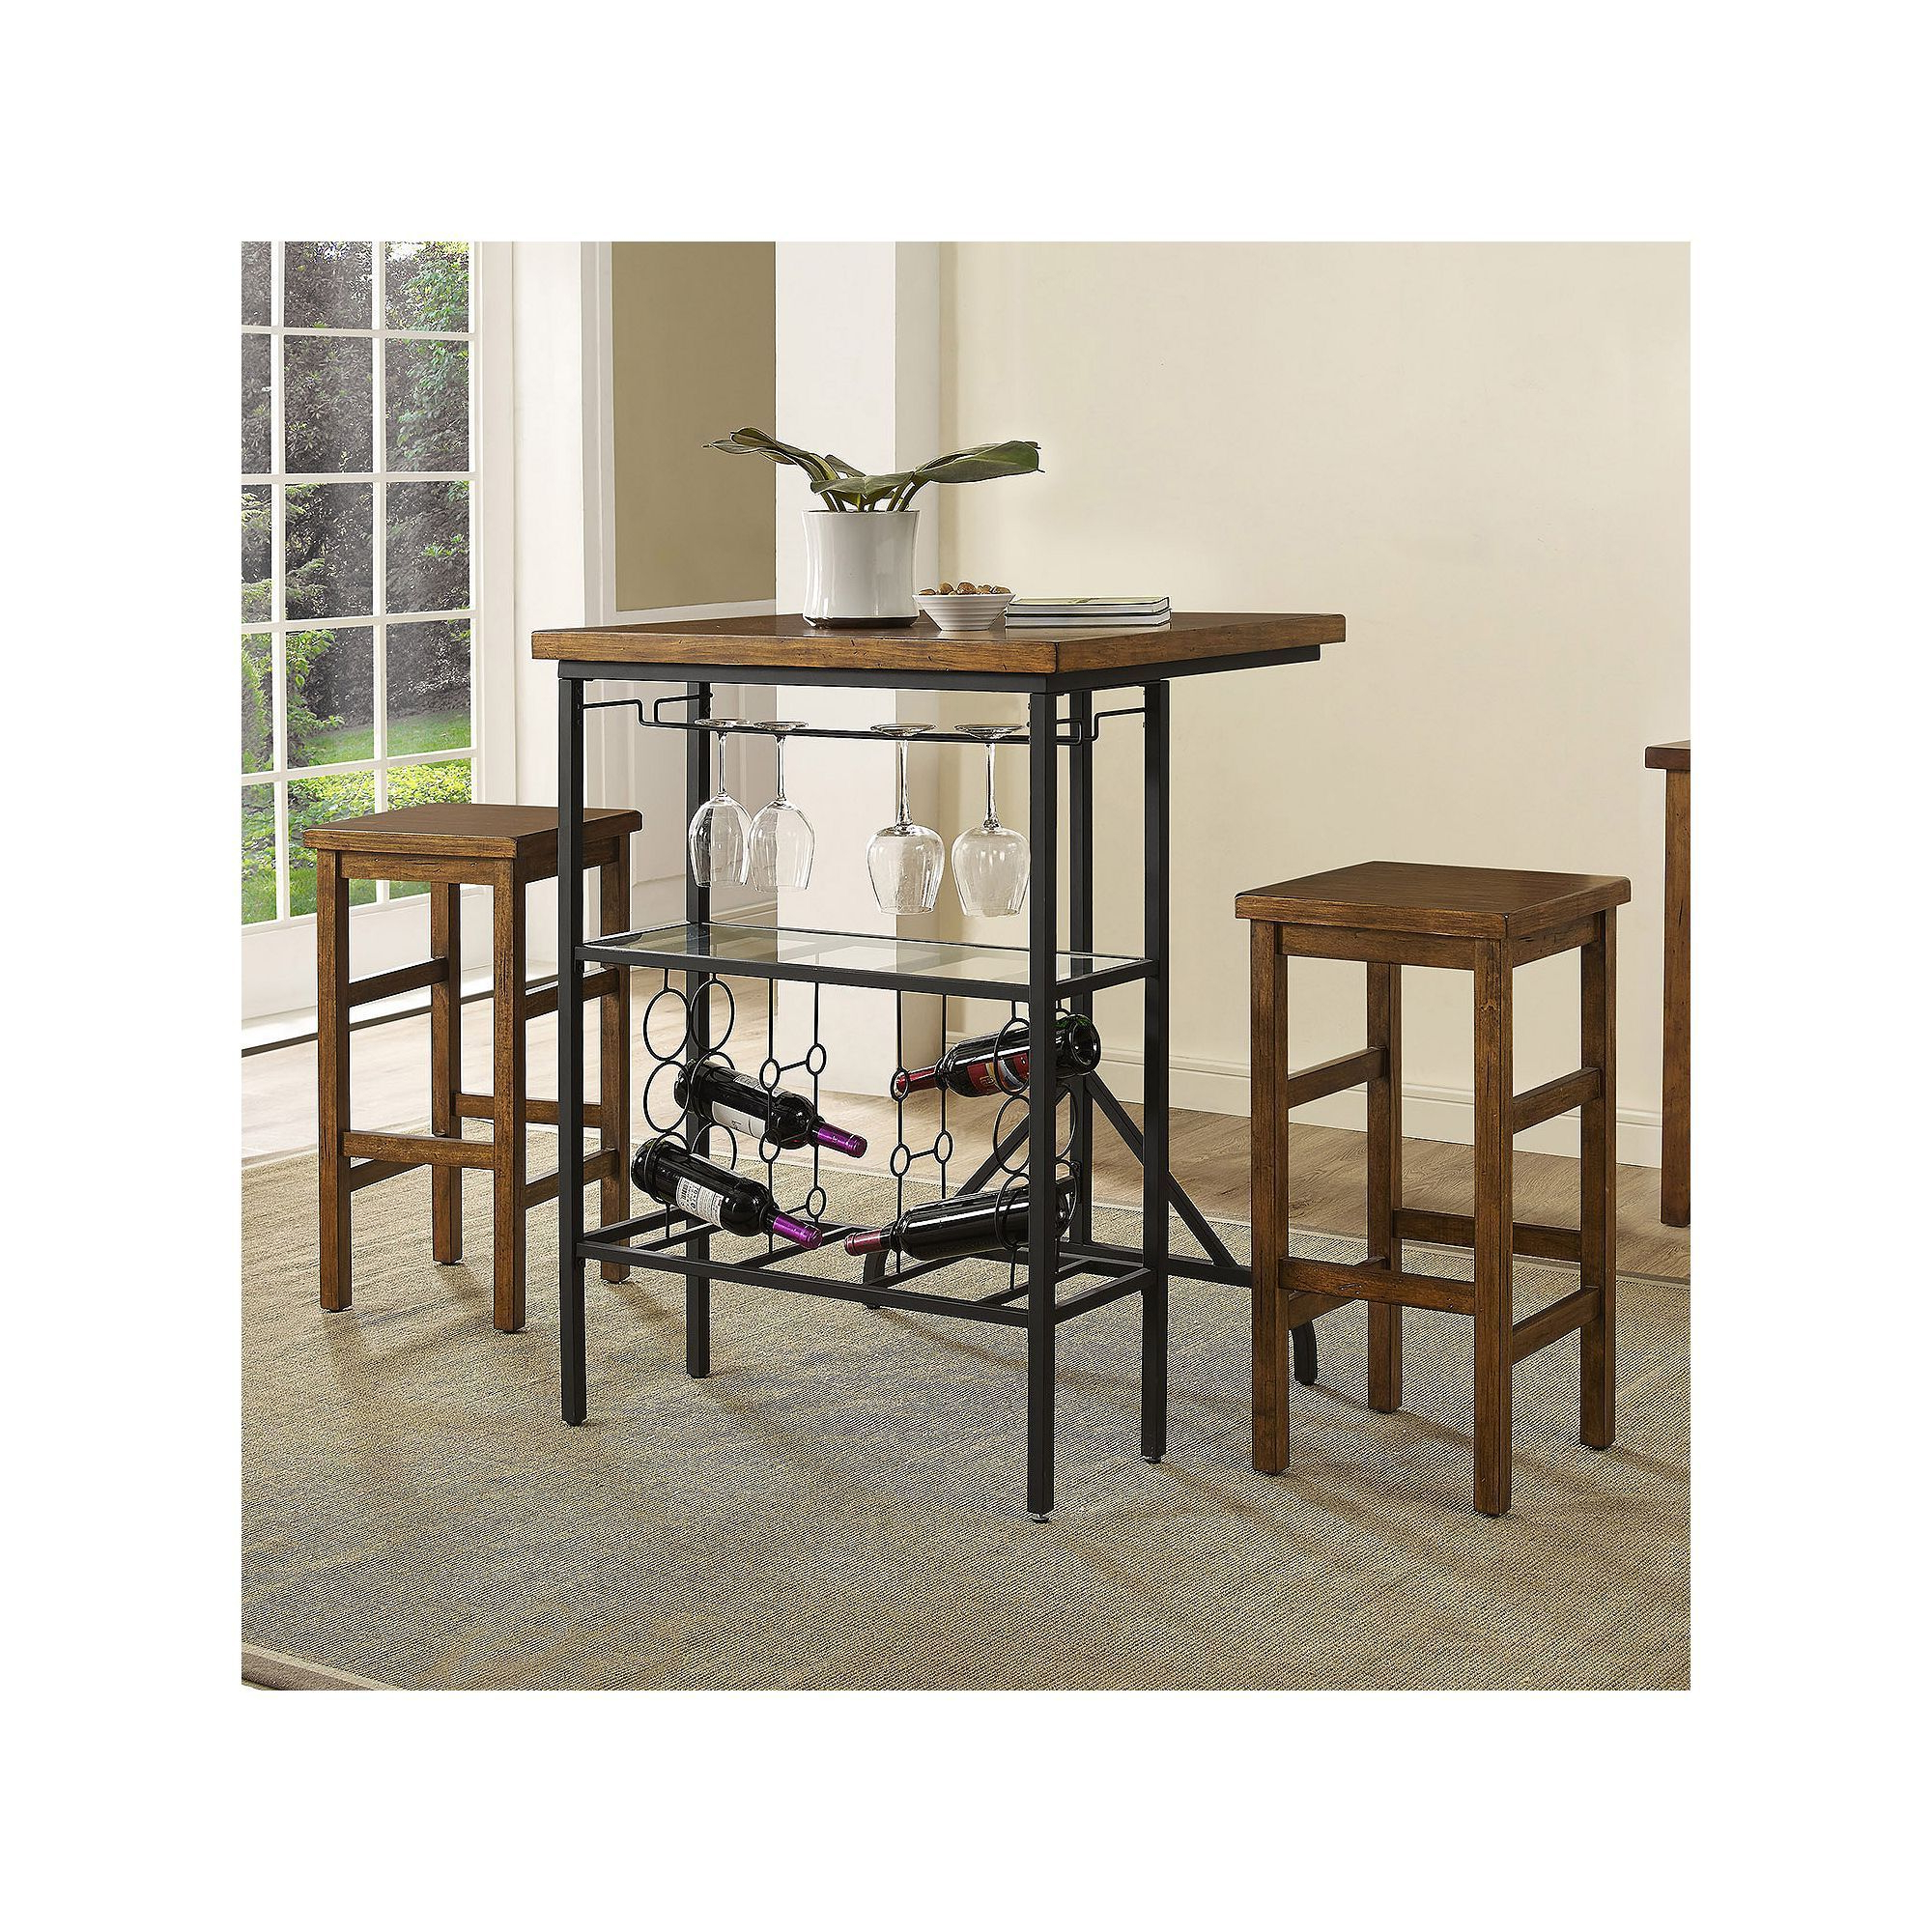 2020 Crosley Furniture Sienna Wine Rack Bistro Table & Bar Stool 3 Piece For Hood Canal 3 Piece Dining Sets (View 10 of 25)